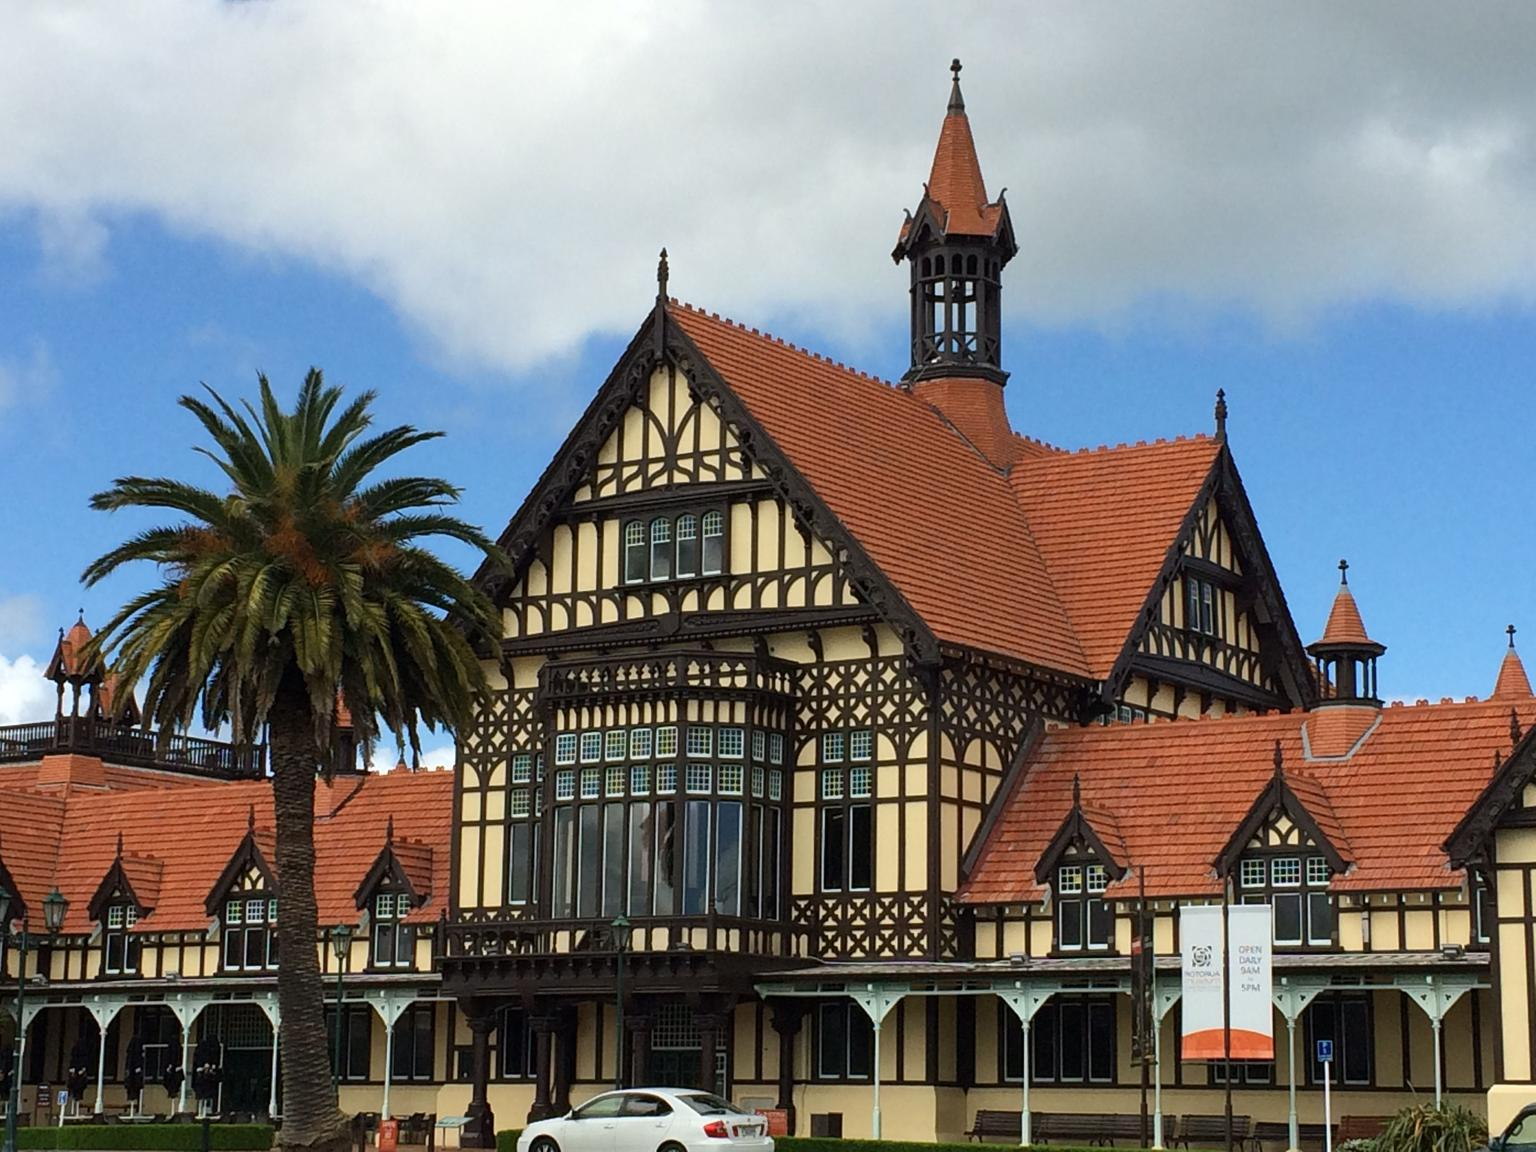 MORE PHOTOS, Rotorua Day Trip from Auckland with Options - Guaranteed departure